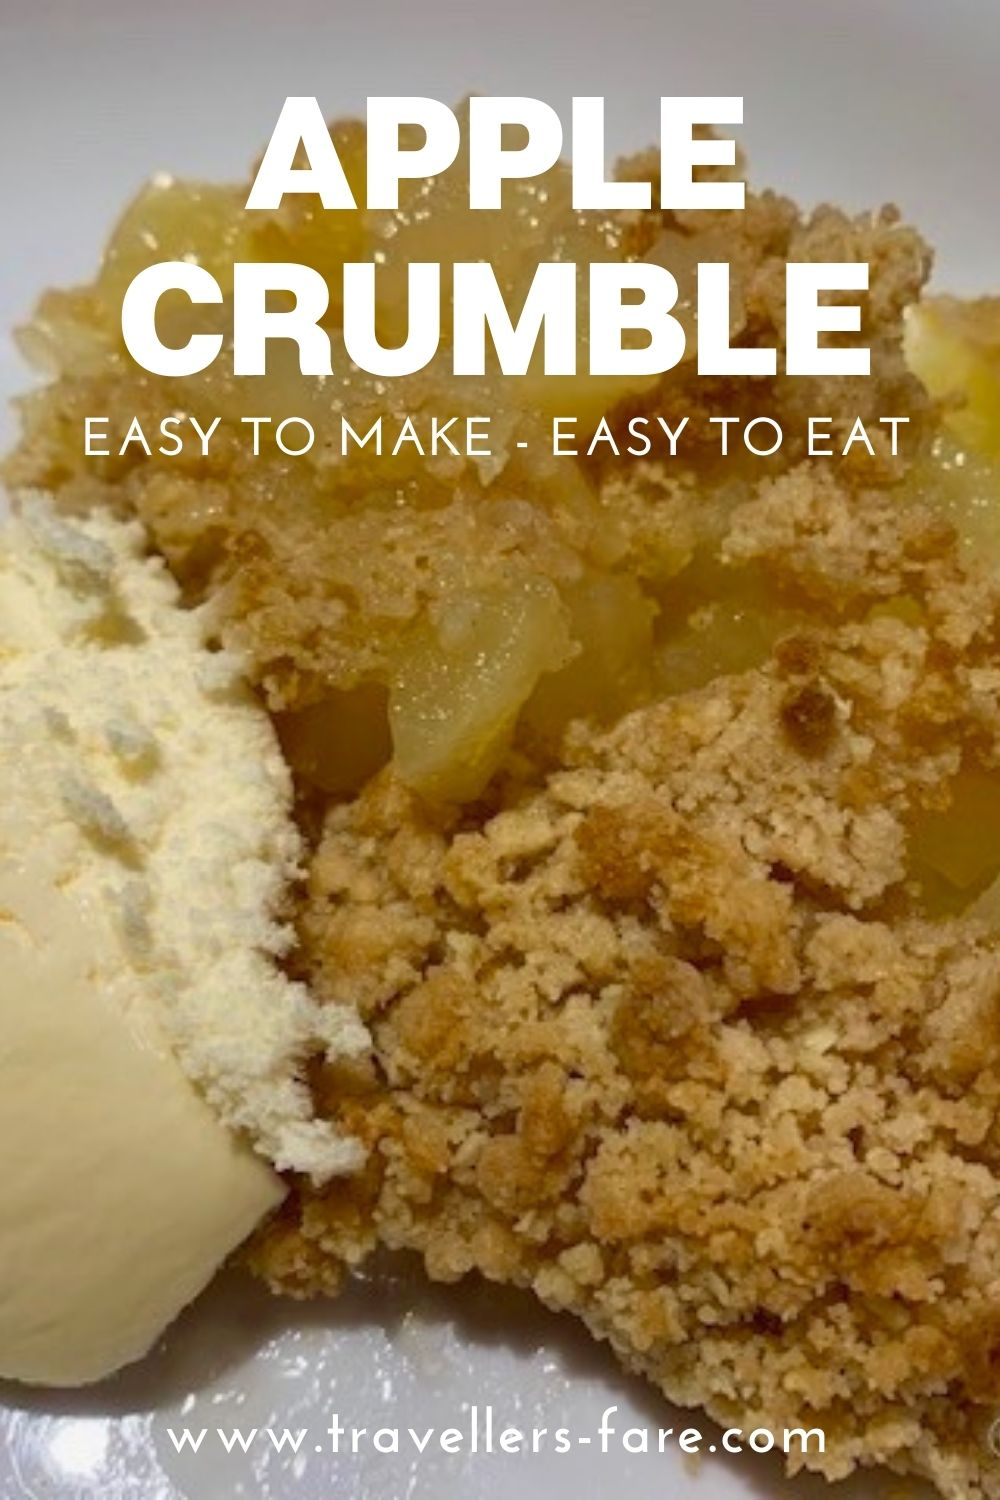 Apple Crumble Made From Stewed Apples With A Crumbly Topping Served With Ice Cream Pin.